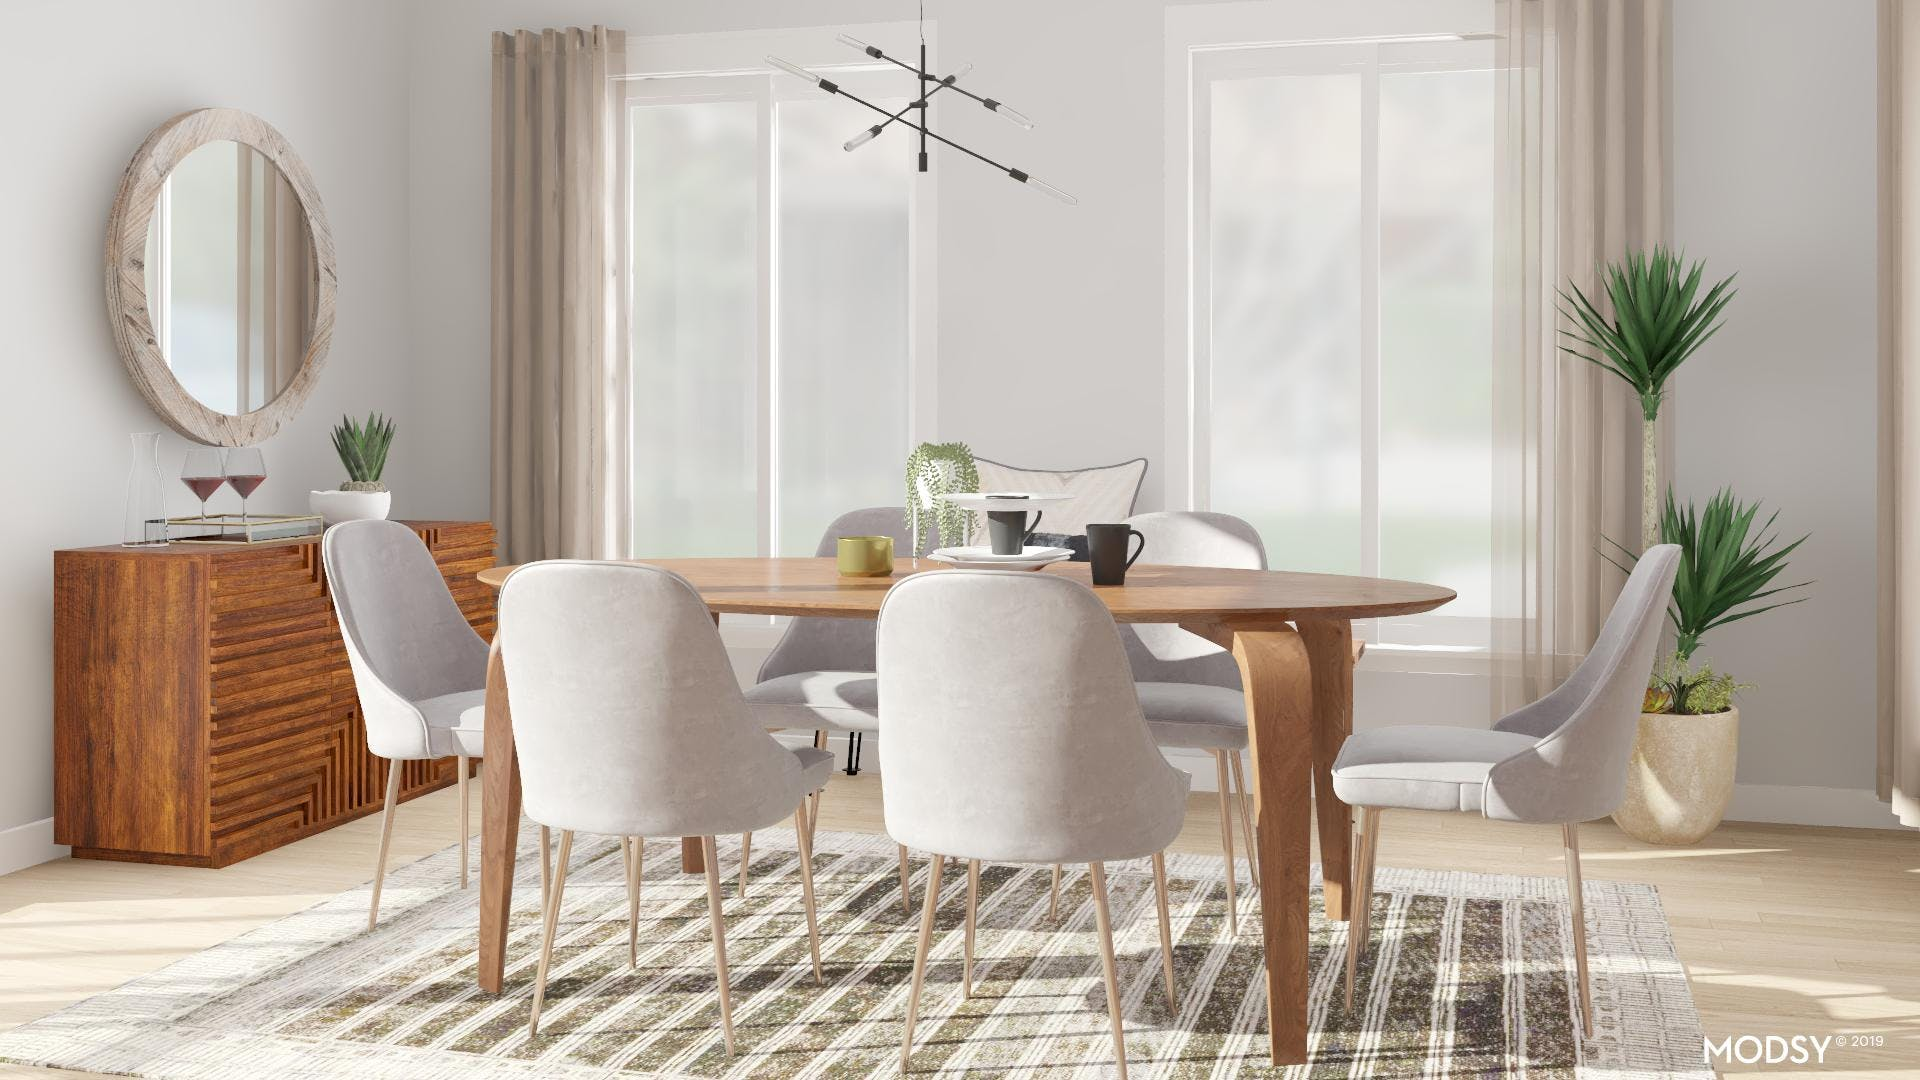 A Neutral, Mod Dining Space